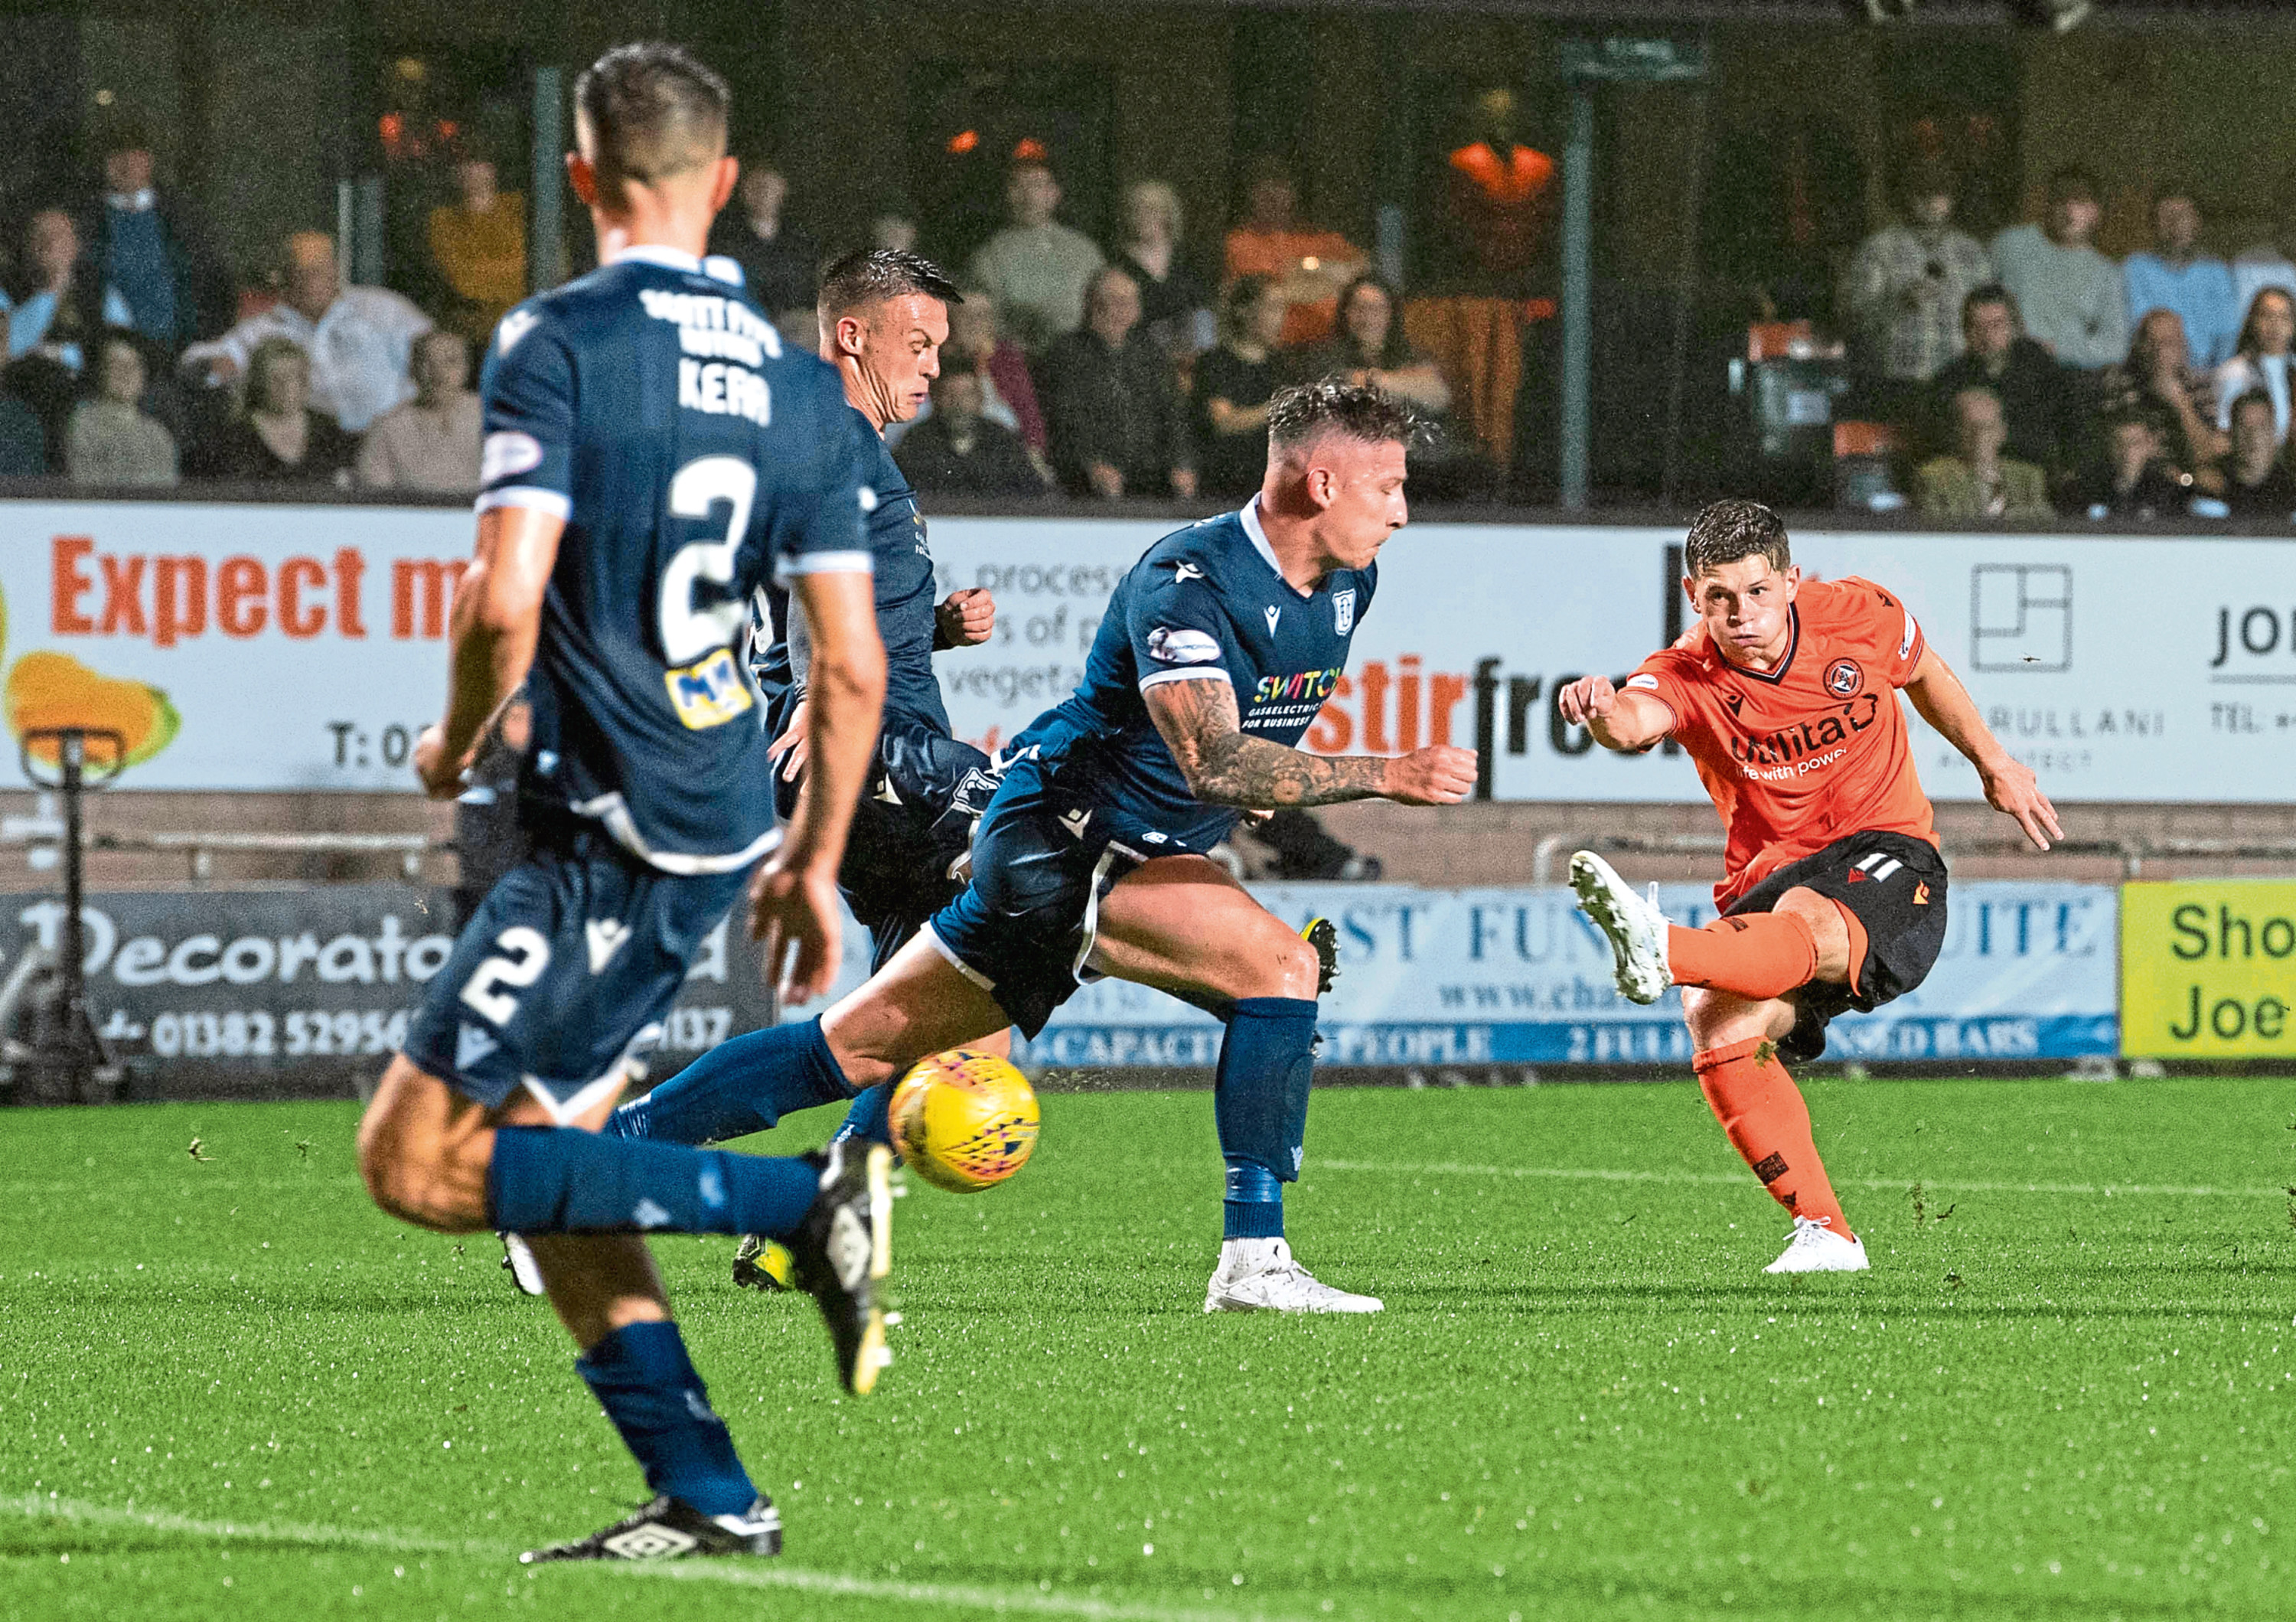 Cammy Smith scores to make it 6-2 during the Dundee derby on August 30.